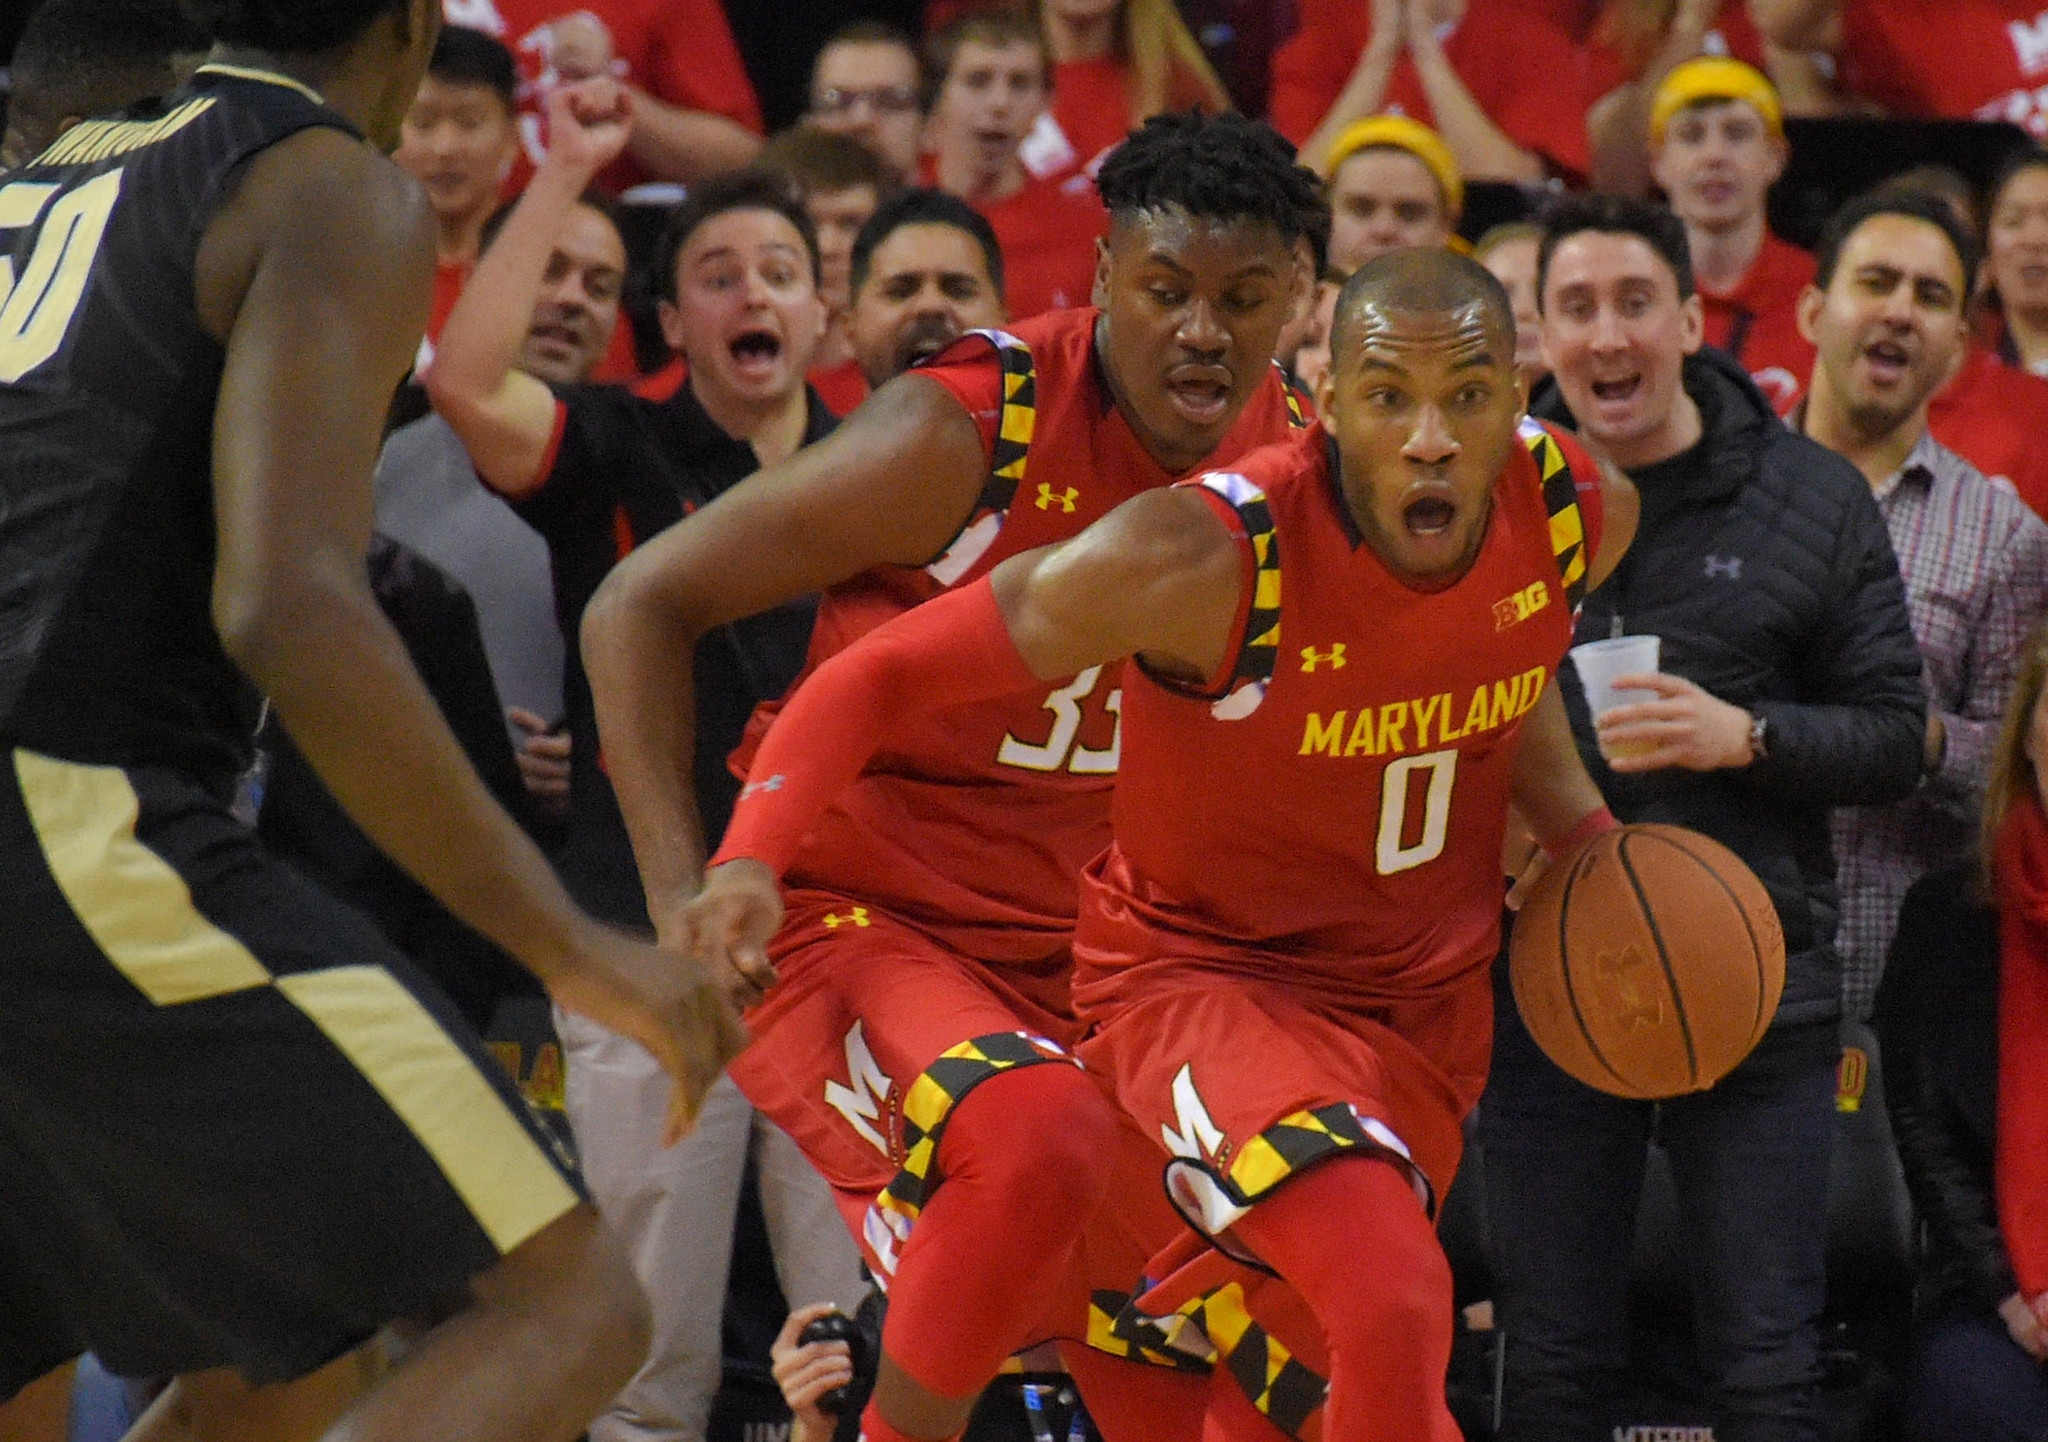 Bal-maryland-senior-rasheed-sulaimon-comes-up-with-another-big-performance-on-a-big-stage-20160206